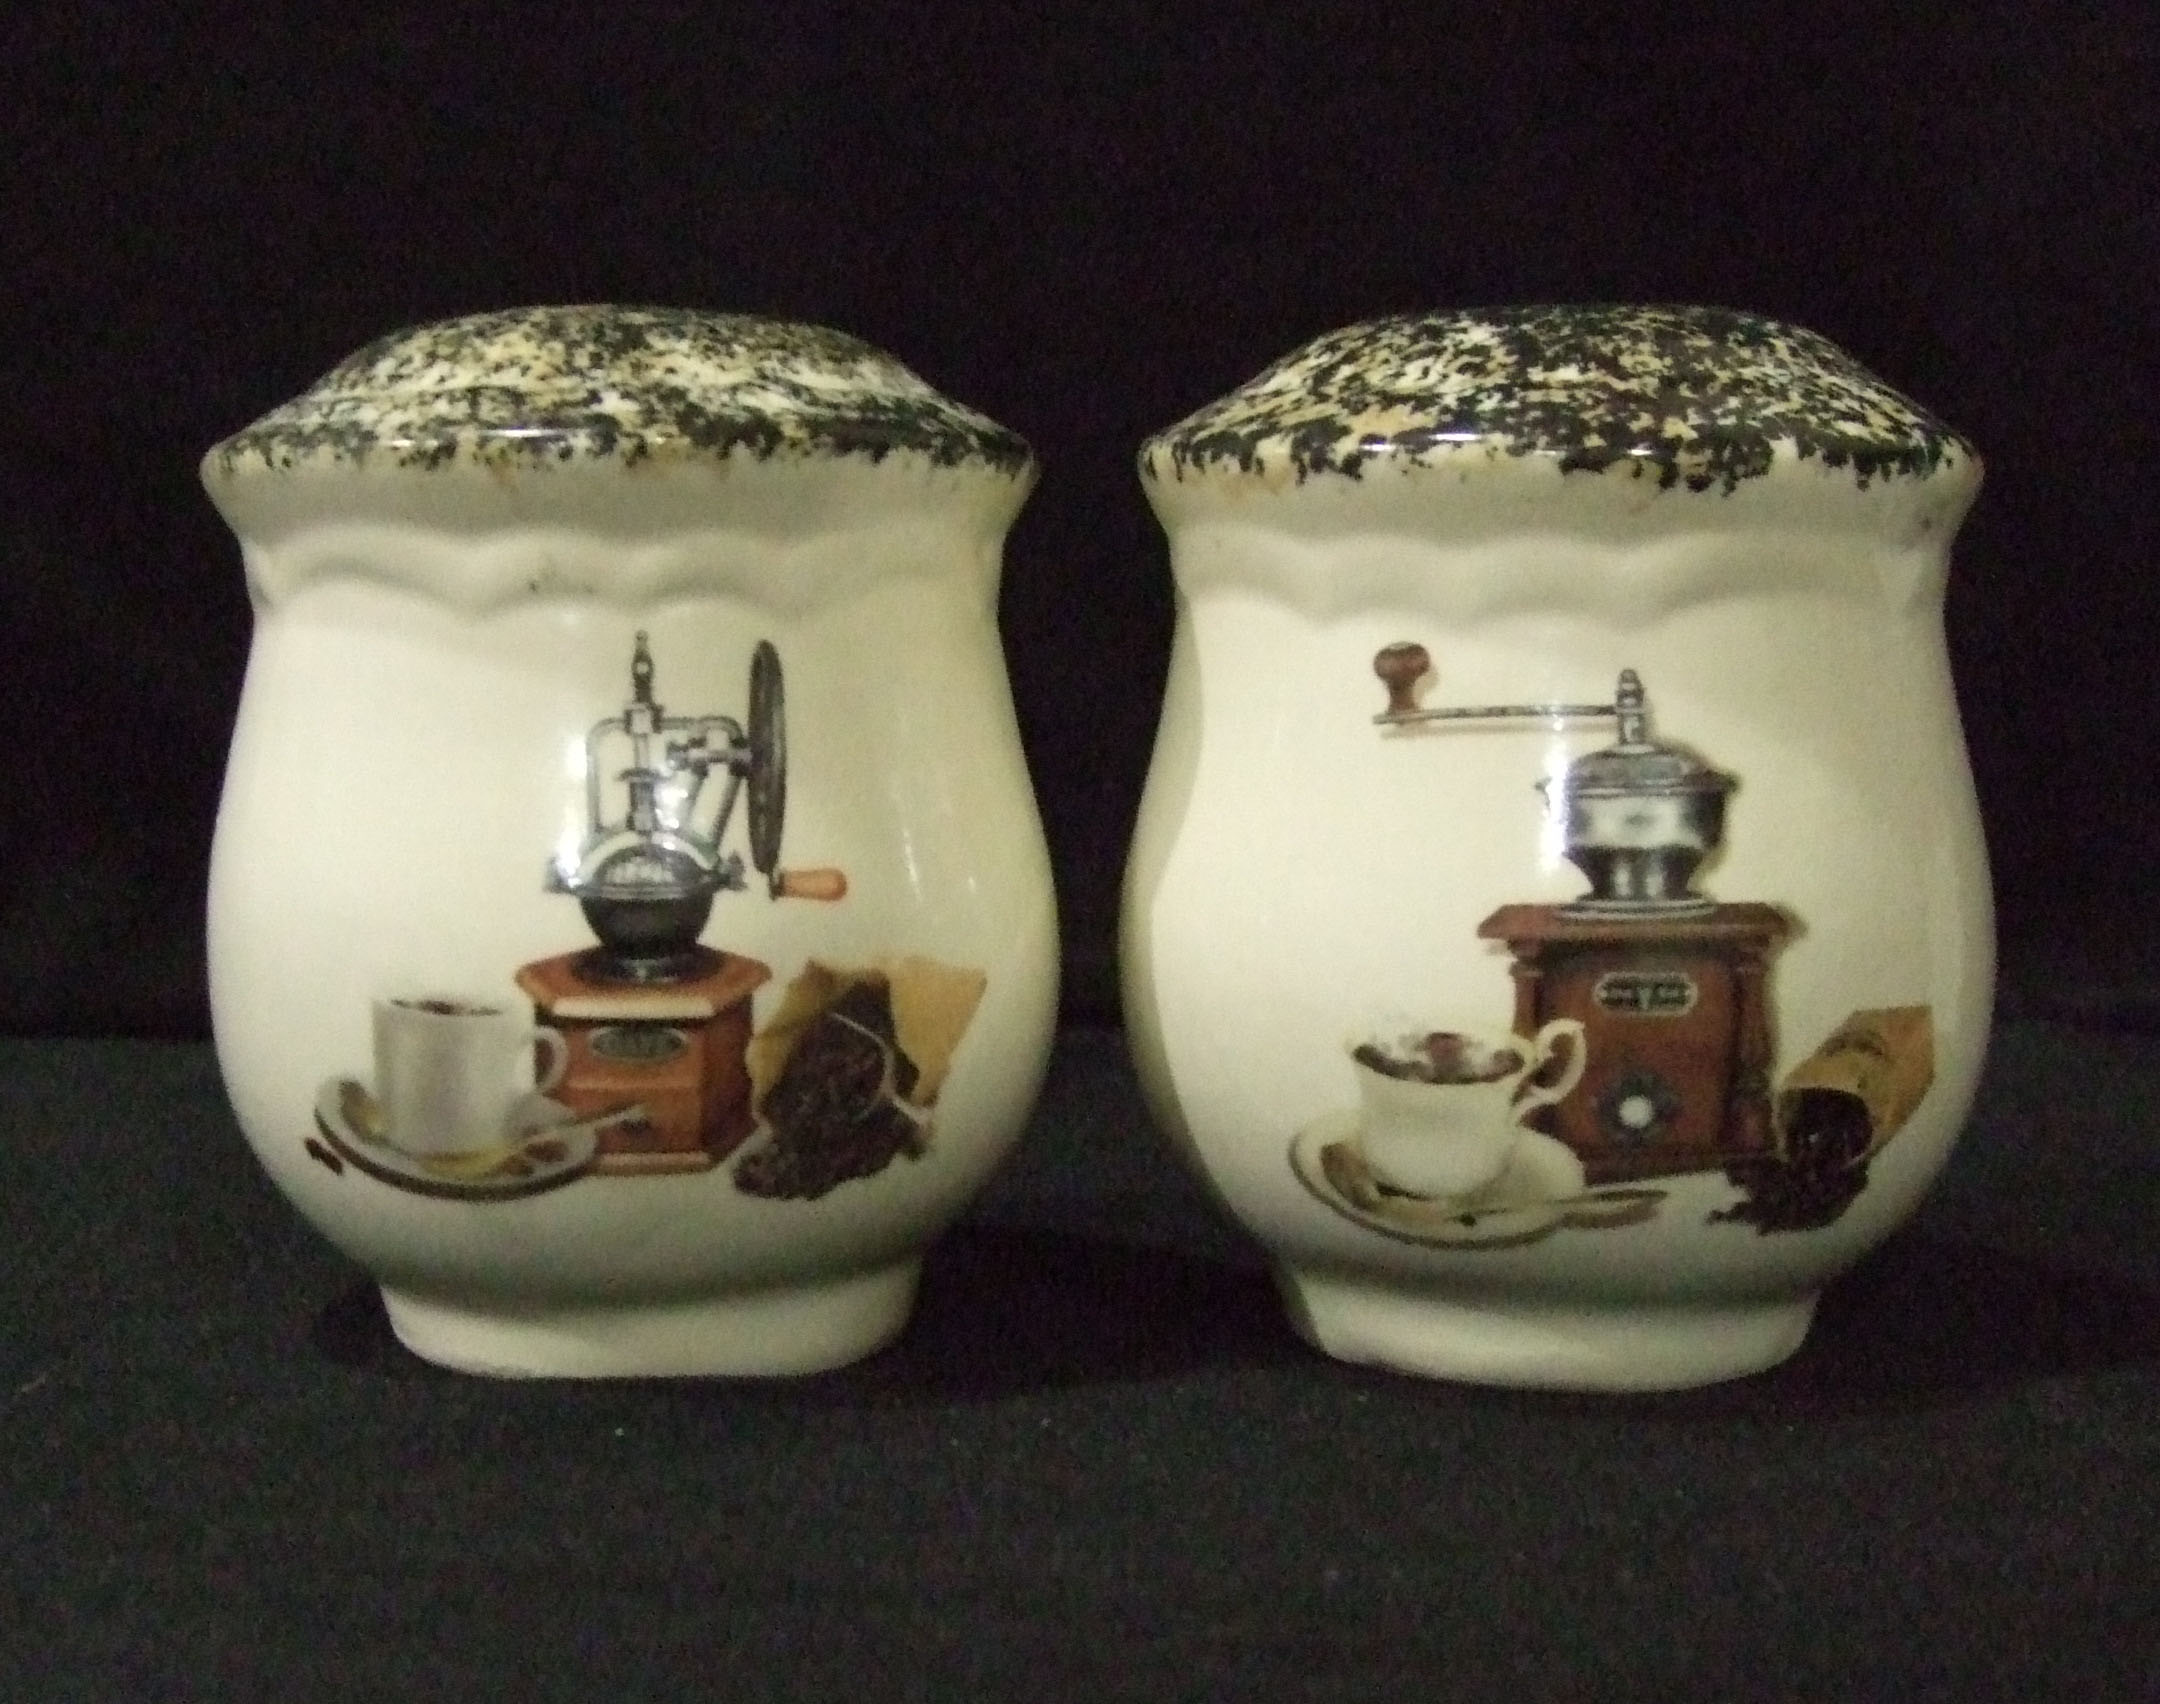 salt and pepper shakers, tableware, crockery, pottery, ceramics